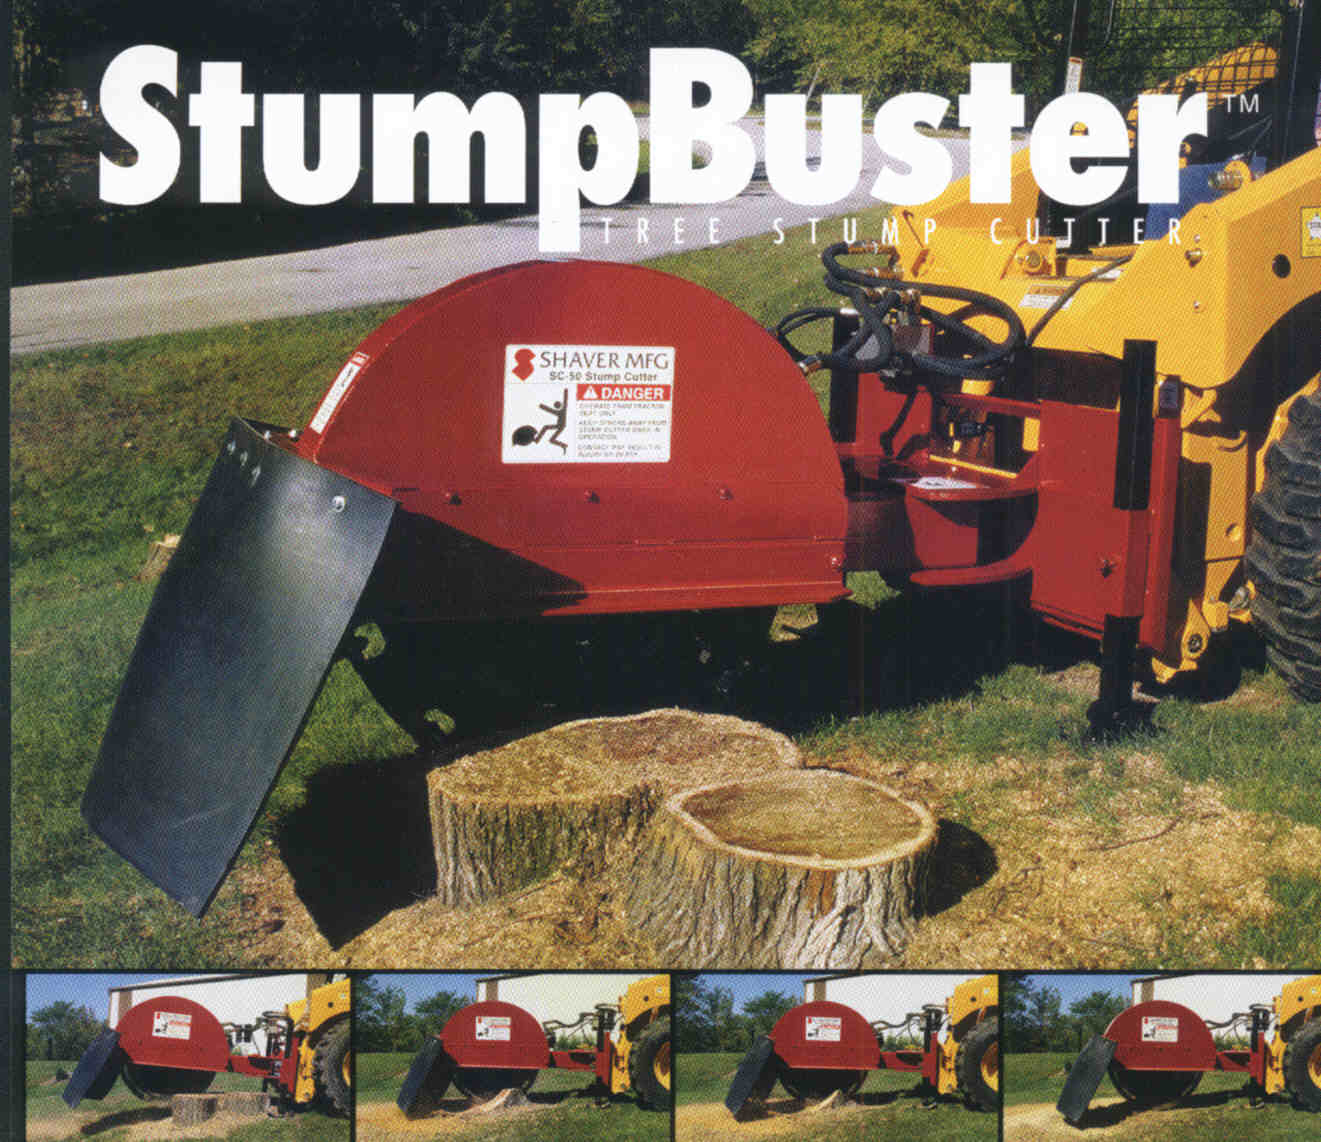 Mounts On Skid Steer Loaders - Designed For Commercial Use